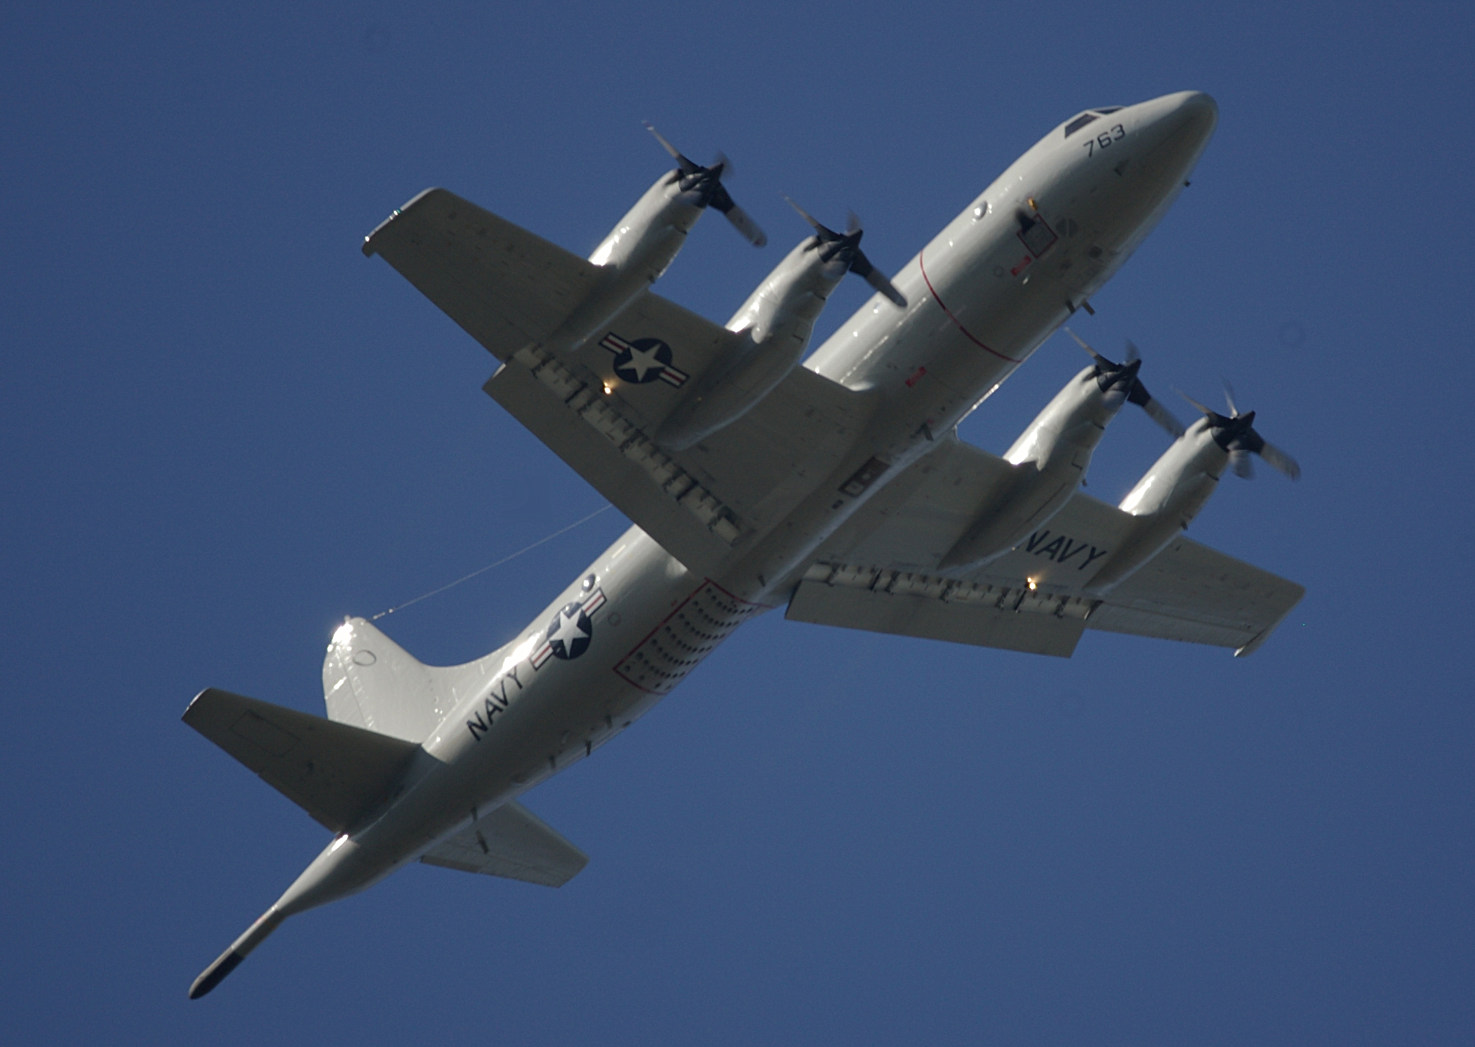 http://upload.wikimedia.org/wikipedia/commons/2/2d/P-3_Orion_underside_view_20080614.jpg